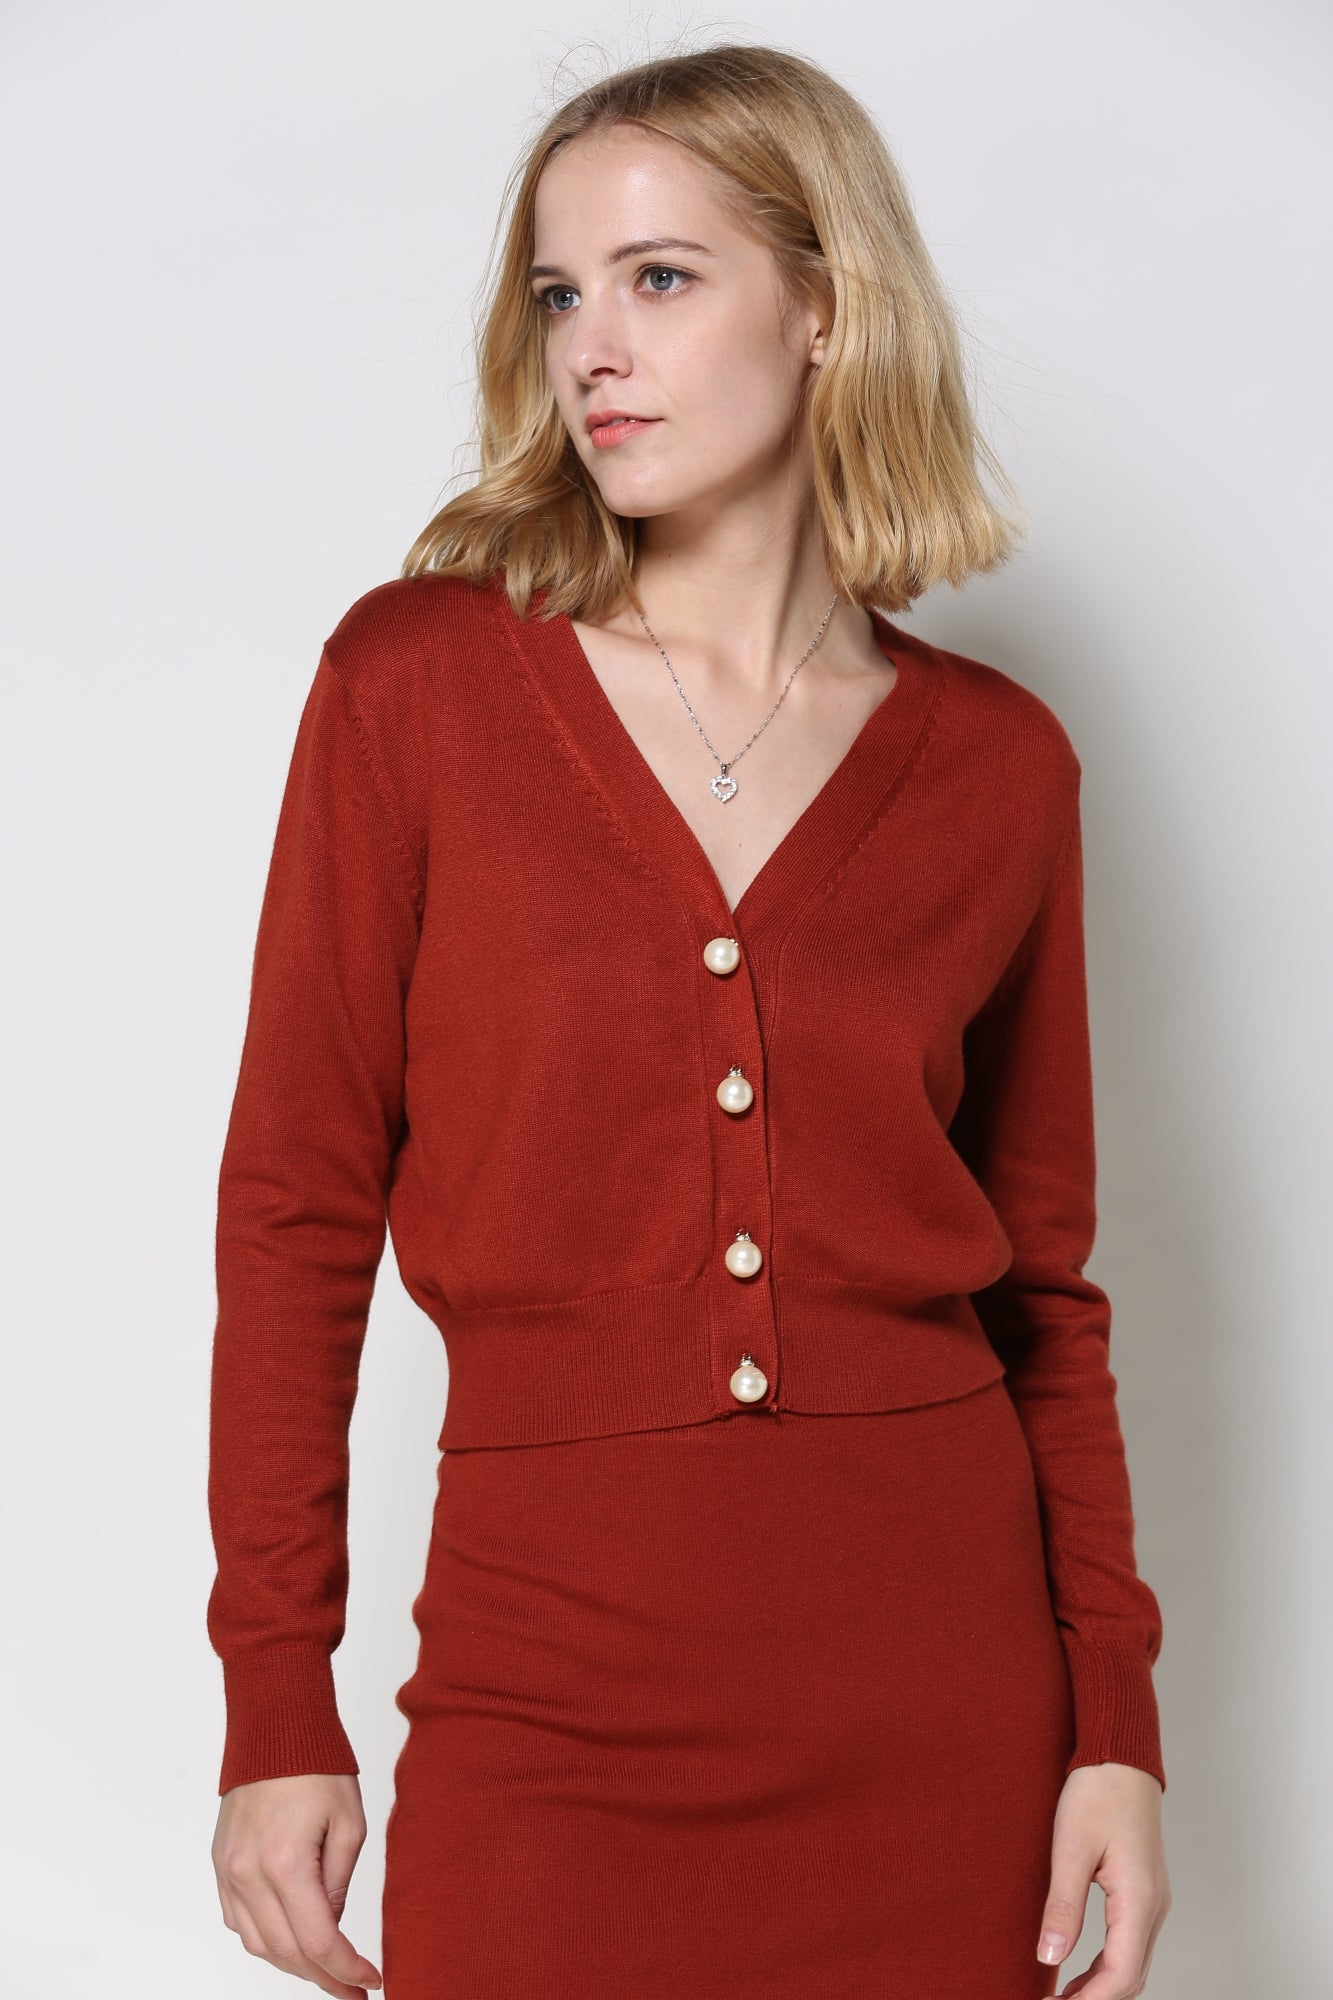 Burnt Red Knit Cardigan with Pencil Skirt